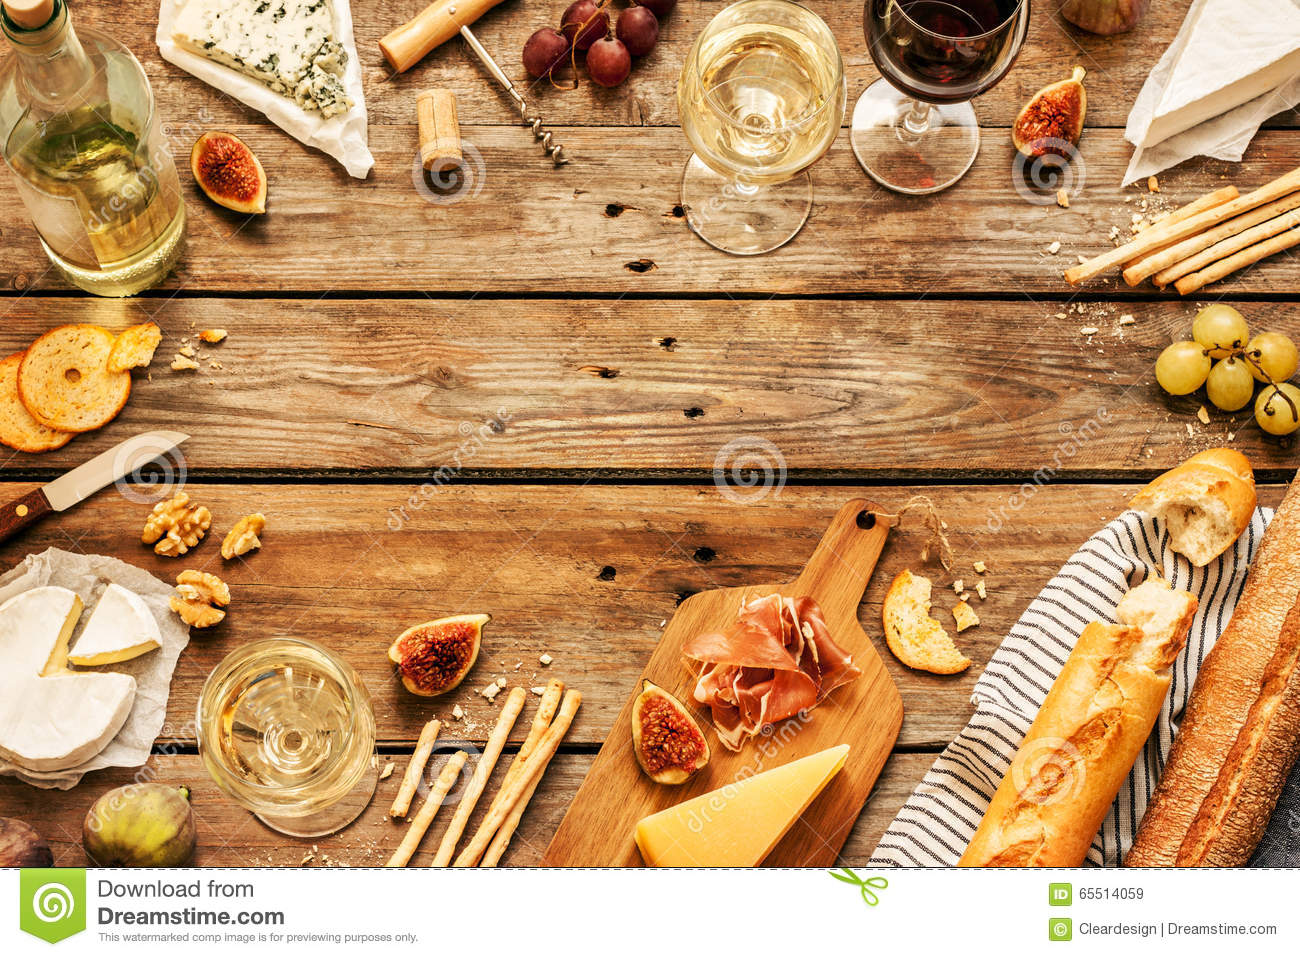 Different kinds of cheeses, wine, baguettes, fruits and snacks